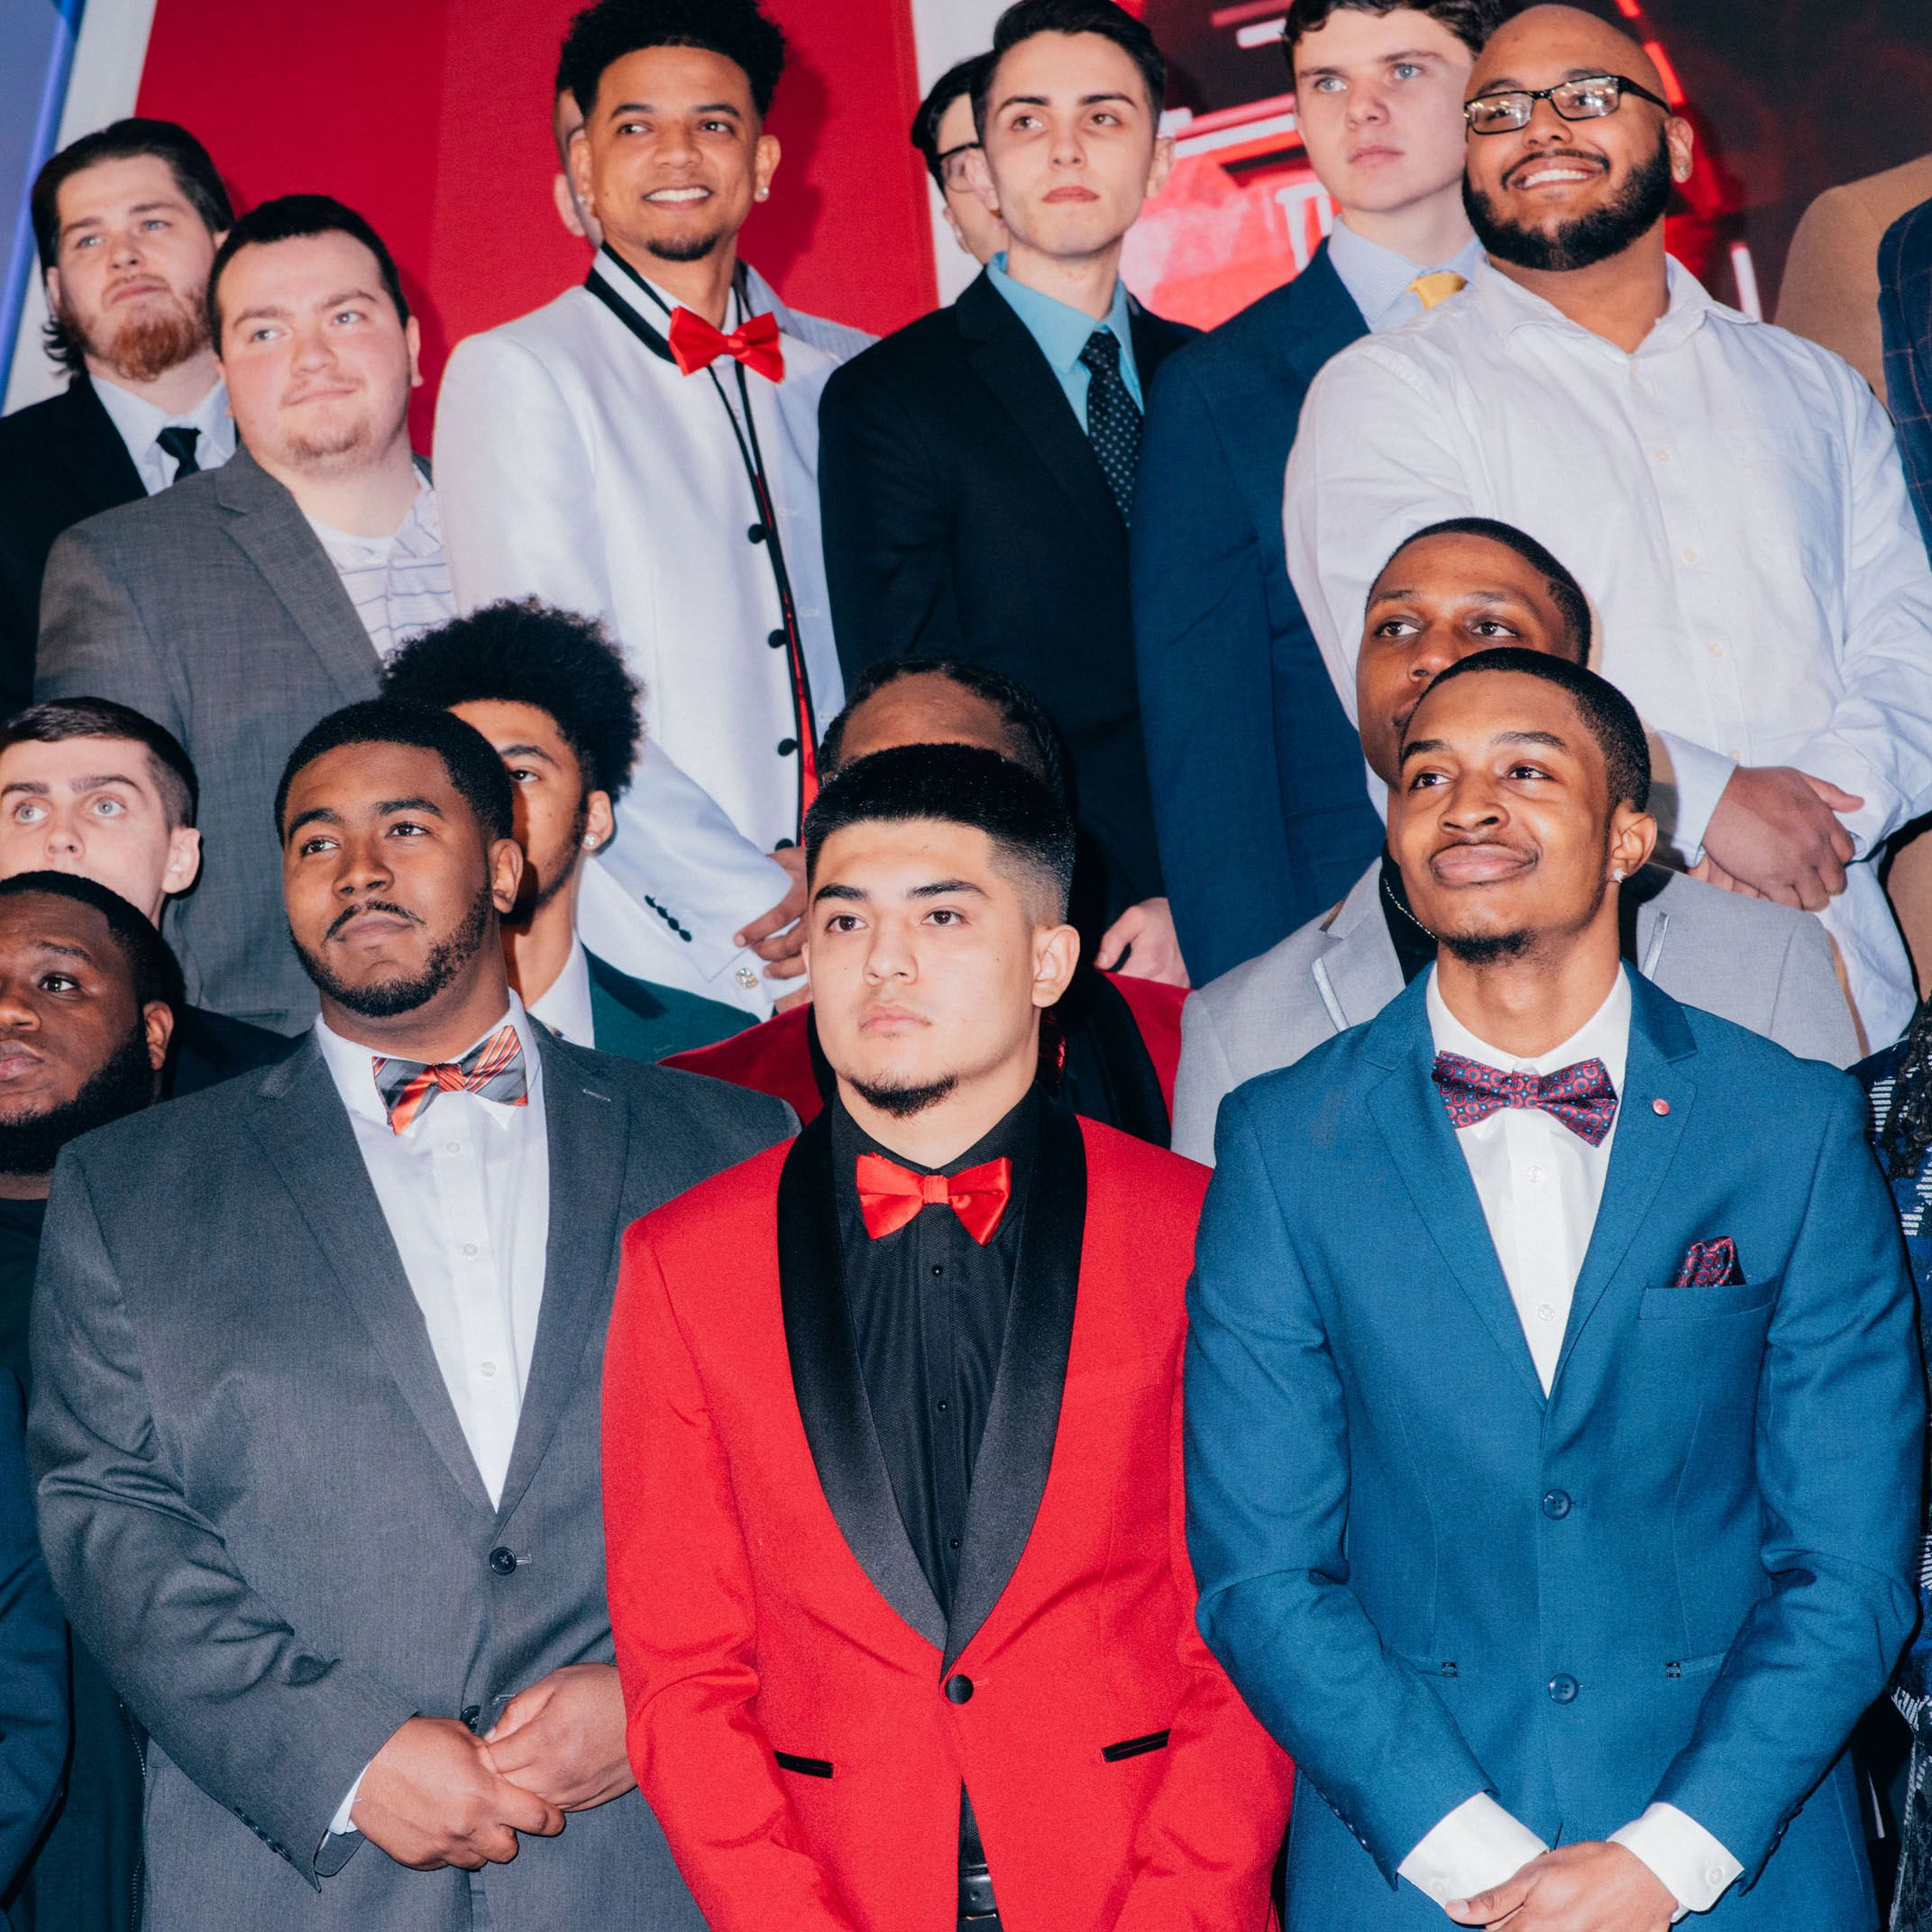 At the NBA 2K League Draft, I Witnessed the Surreal Future of What It Means to Go Pro